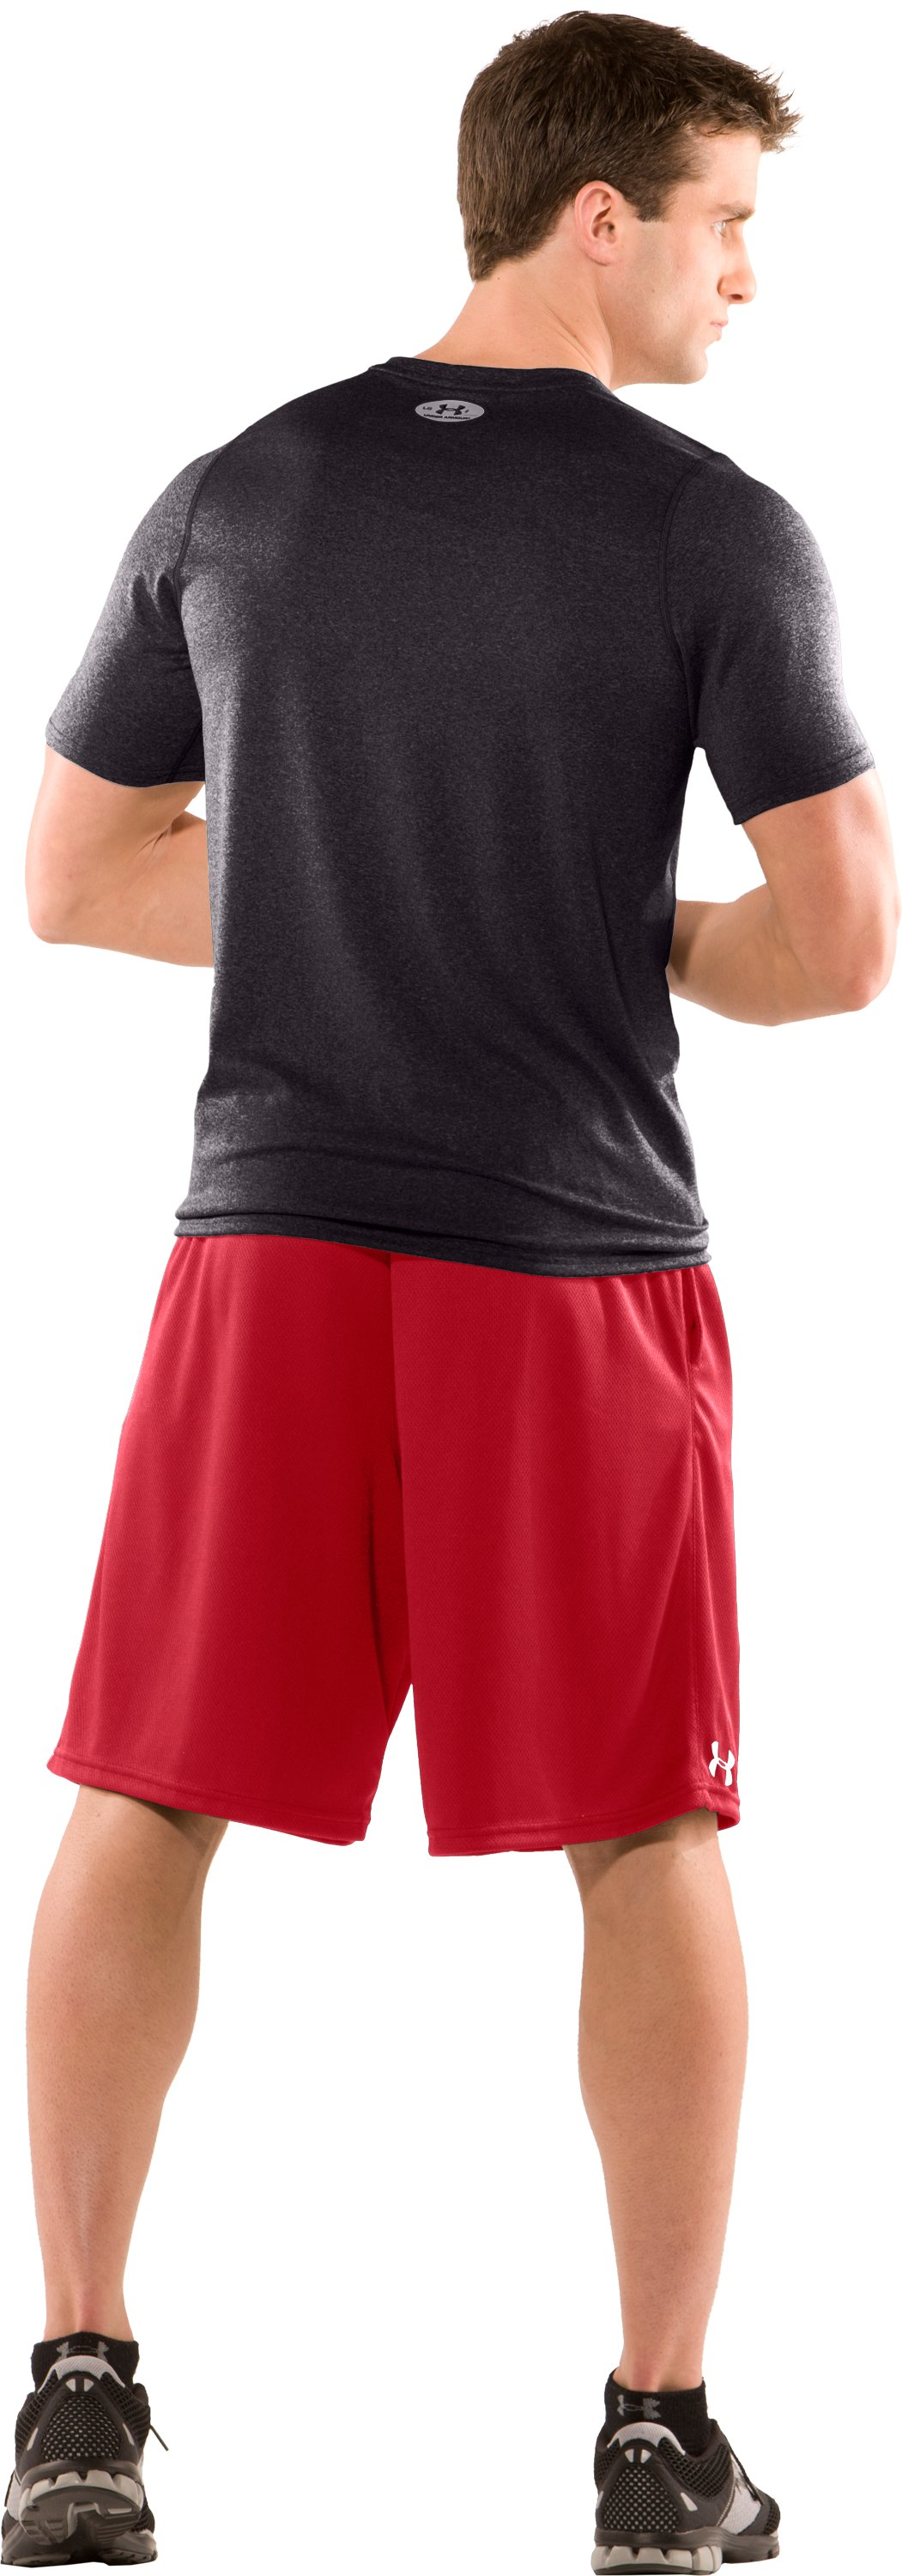 Men's HeatGear® Touch Fitted Short Sleeve V-Neck T-Shirt, Carbon Heather, Back